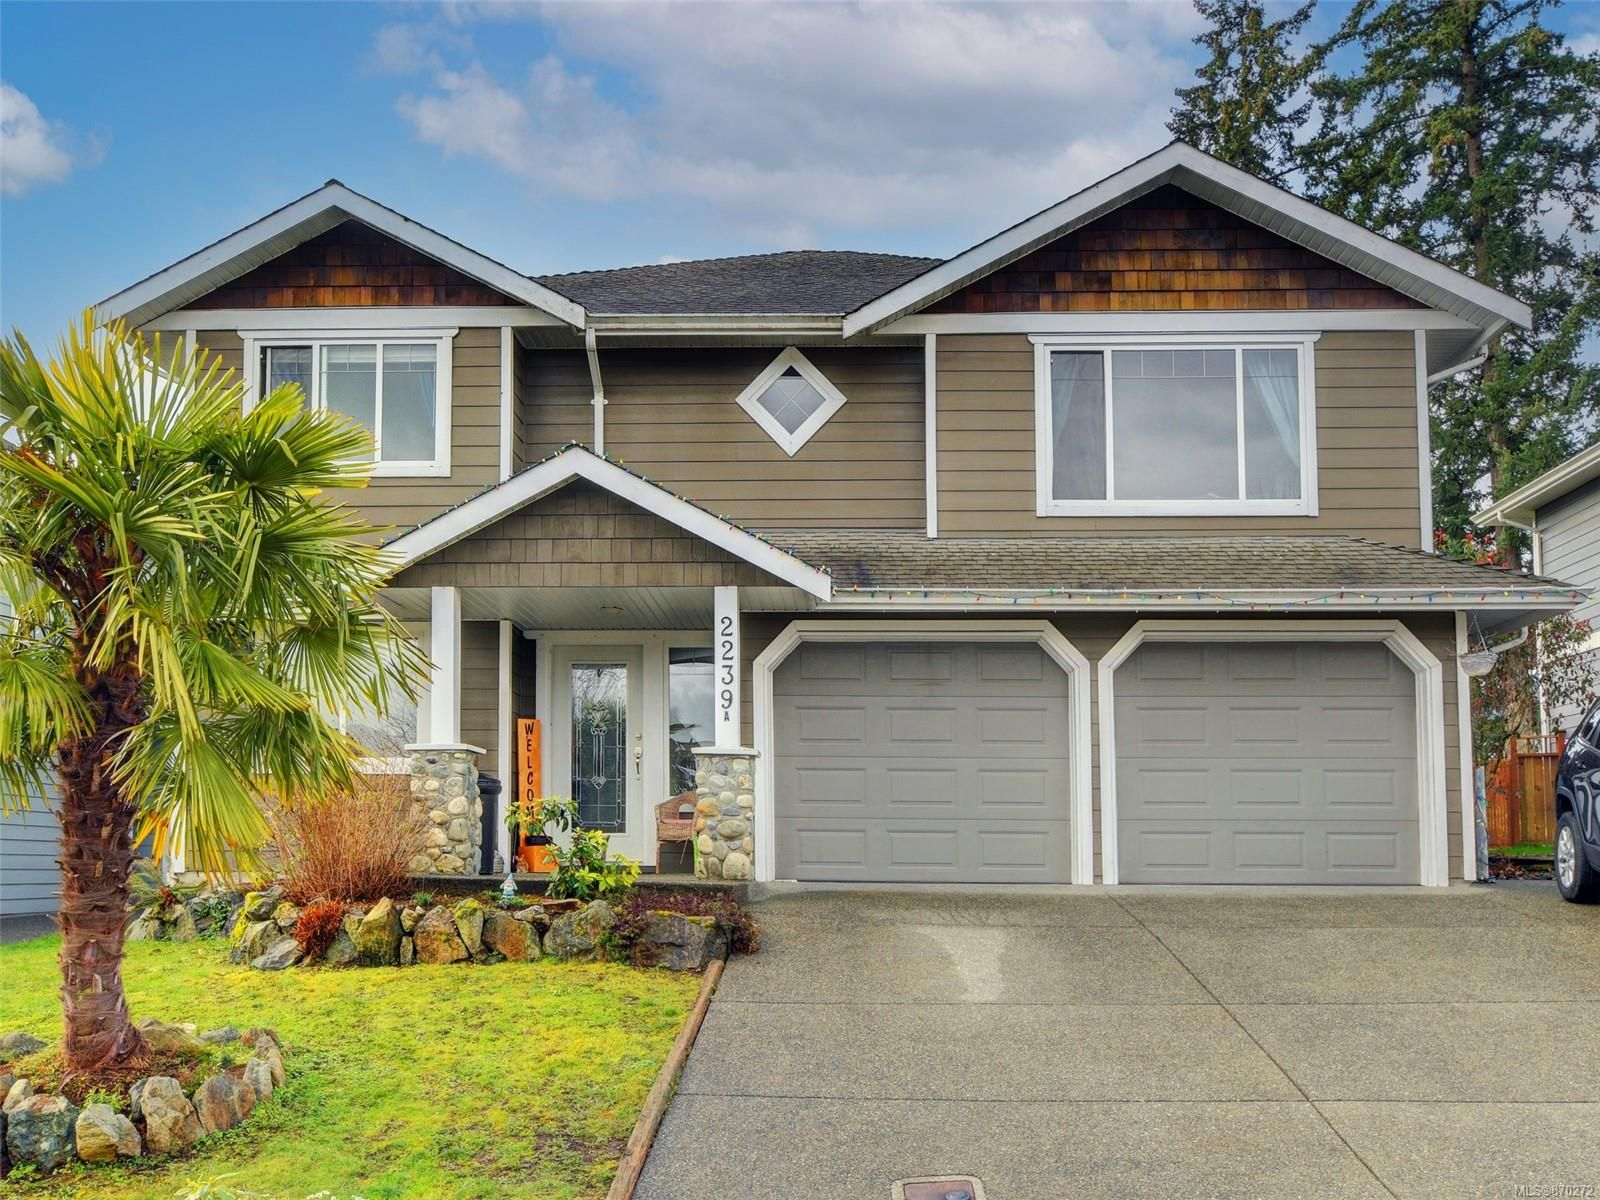 Main Photo: 2239 Setchfield Ave in : La Bear Mountain House for sale (Langford)  : MLS®# 870272